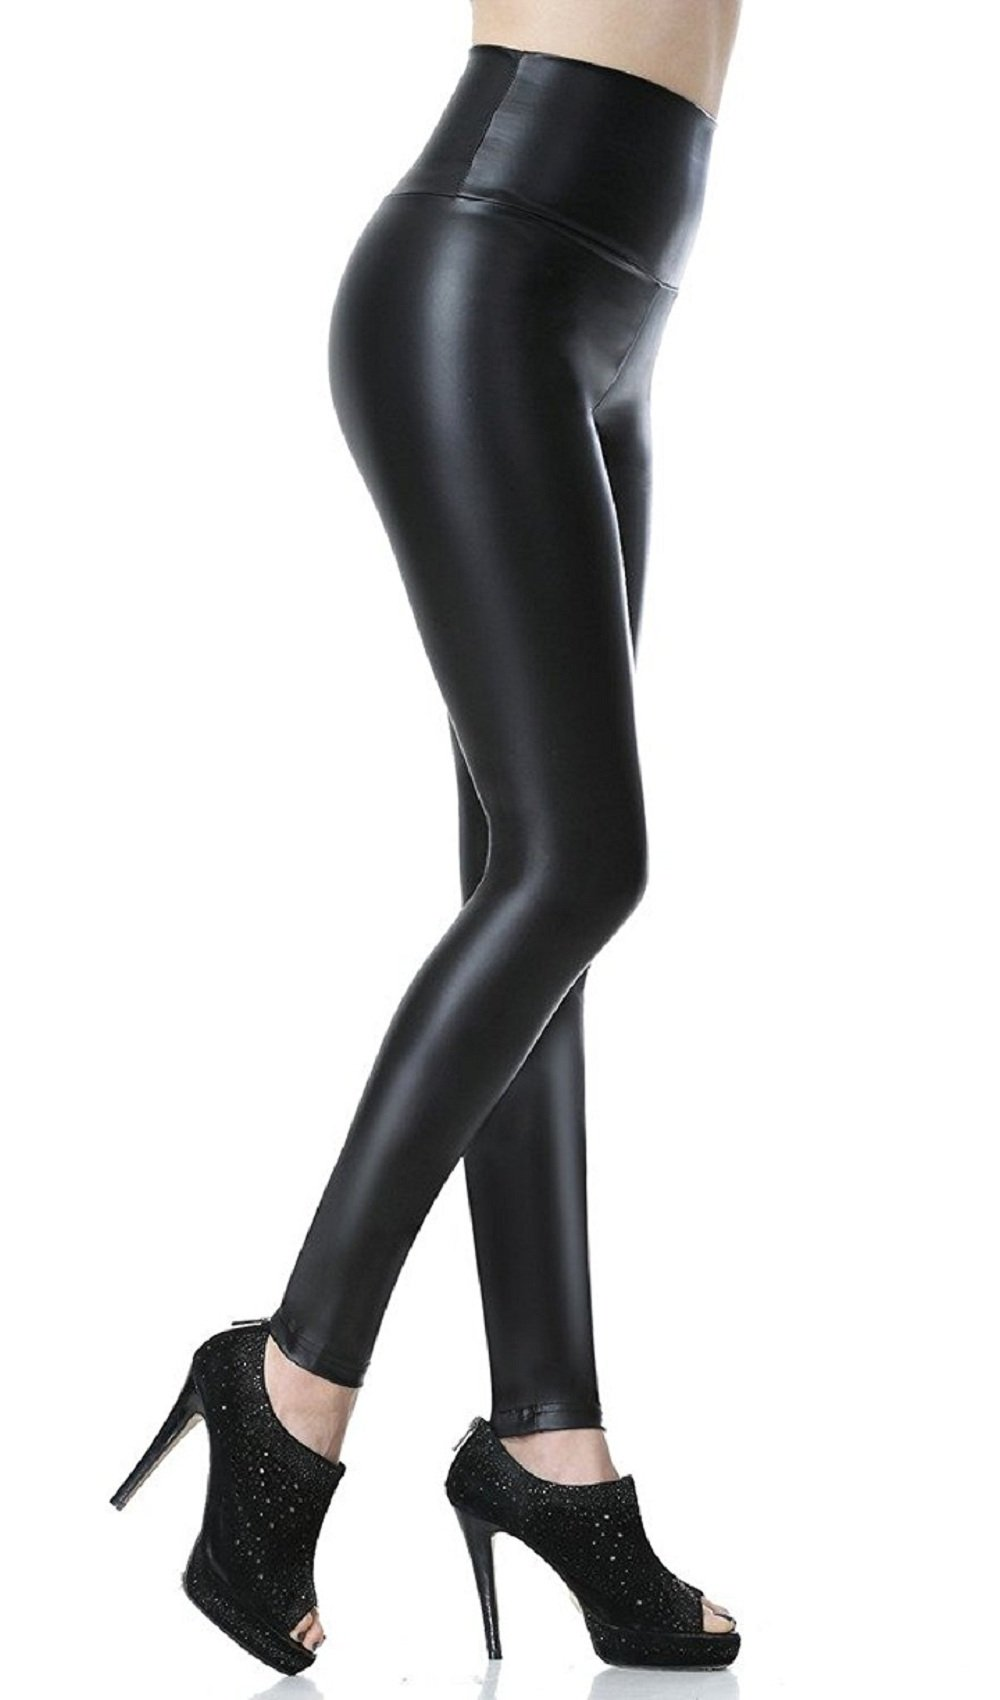 Z.M Faux Leather Leggings for Women High Waisted PU Leather Pants Sexy Black Stretchy